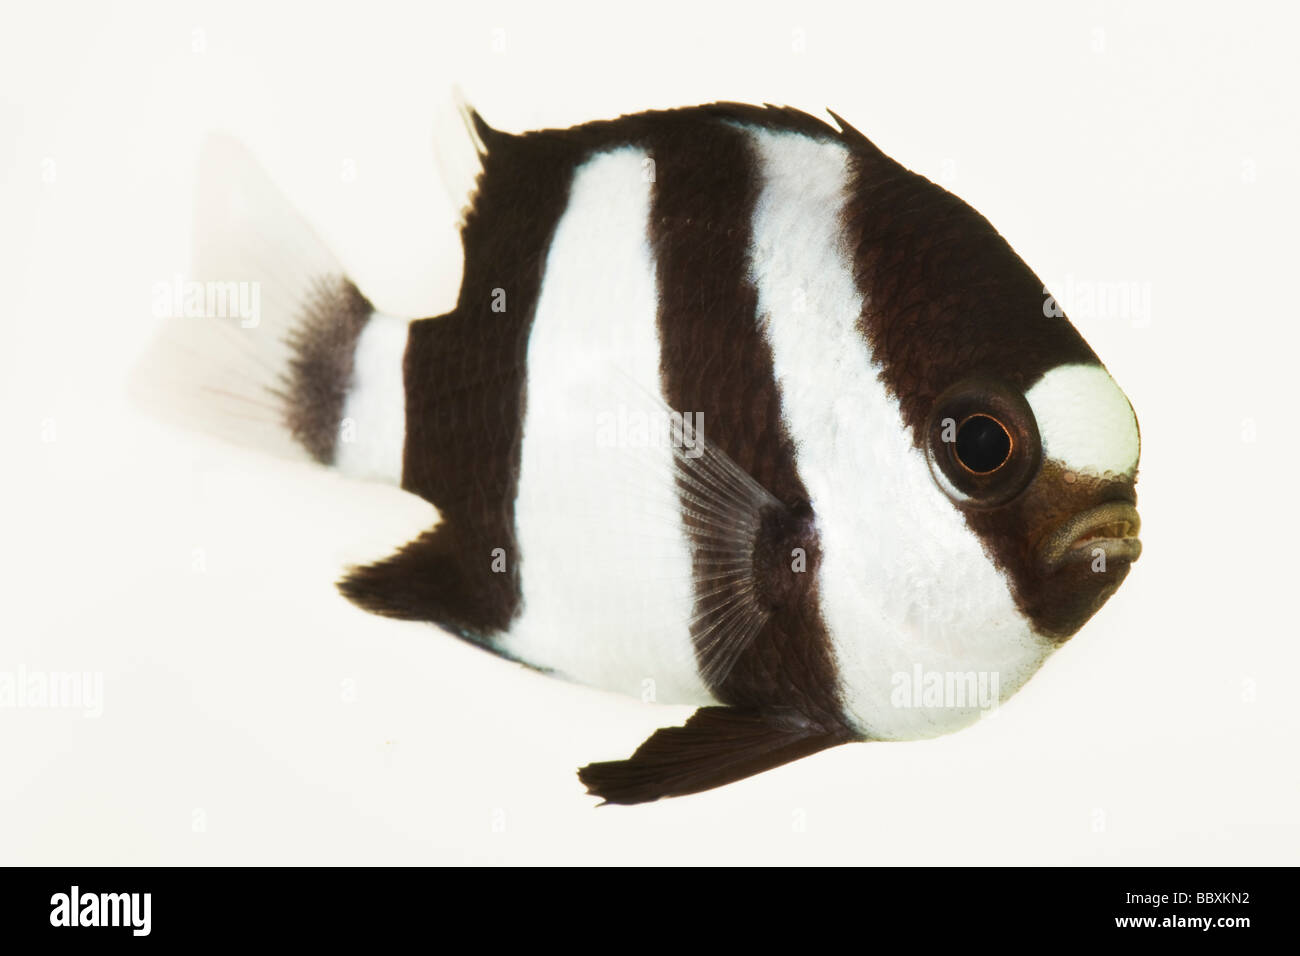 3 Stripe Damsel Dascyllus aruanus Tropical marine reef fish  Indo West Pacific from eastern Africa and the Red Sea - Stock Image